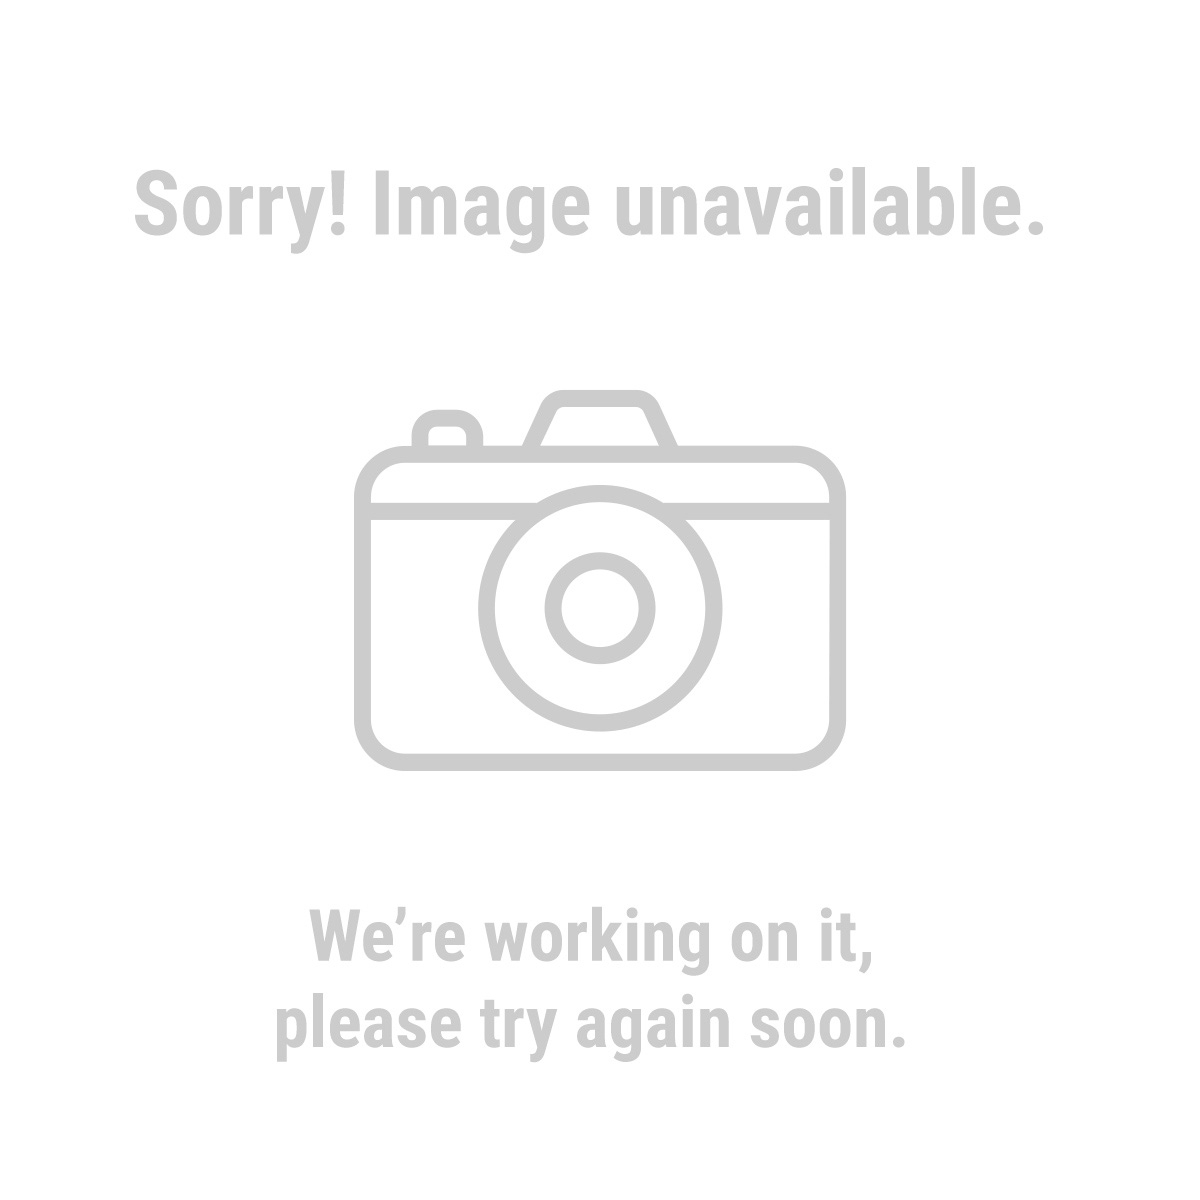 Ship to Shore 98130 3 Piece Vacuum Preserving Container Set